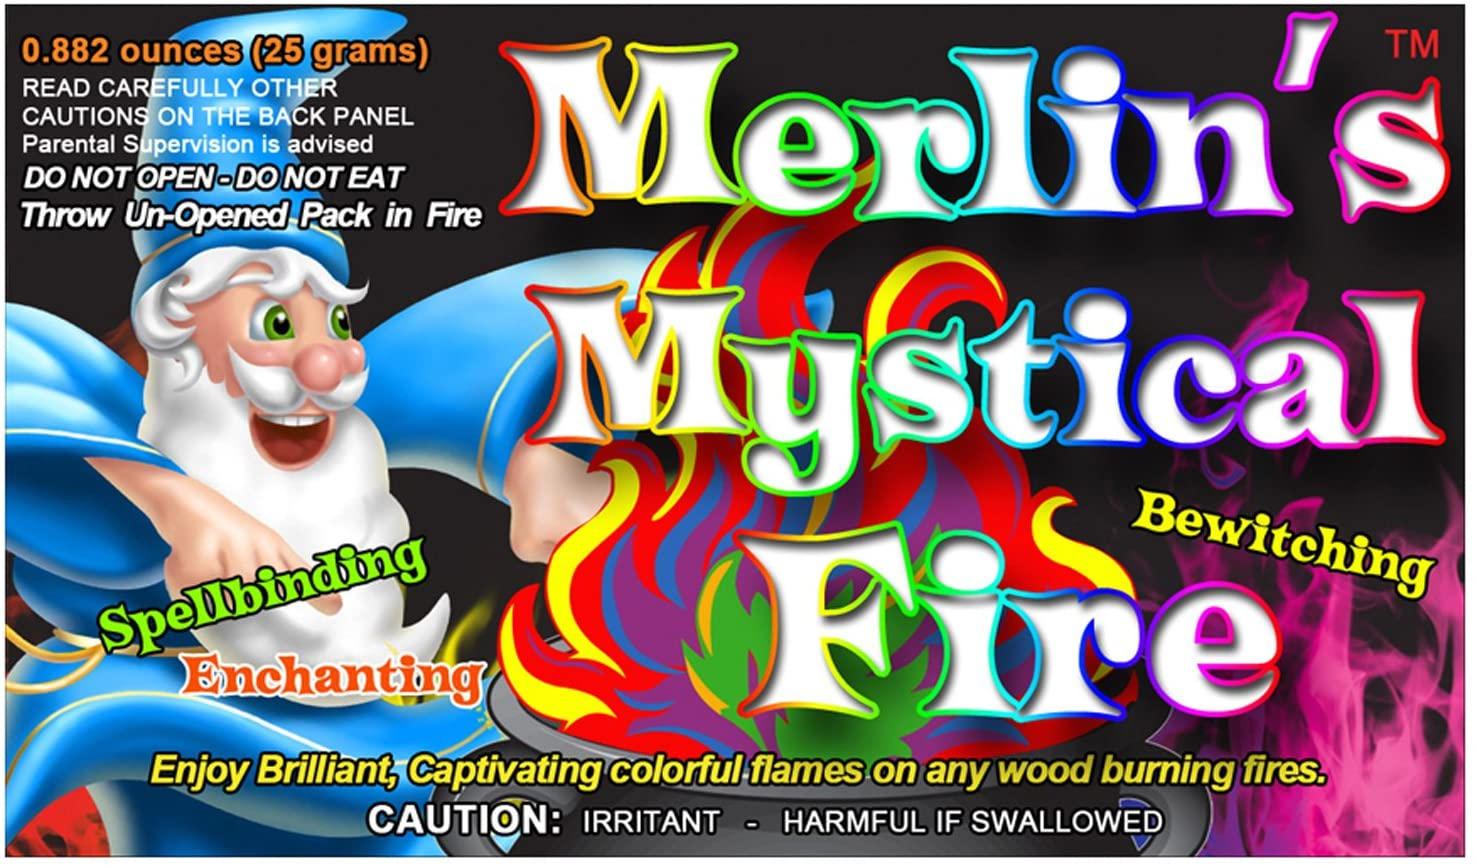 Mystical Fire Merlin's Fire Flame Colorant Vibrant Long-Lasting Pulsating Flame Color Changer for Indoor or Outdoor Use 0.882 oz Packets 6 Pack